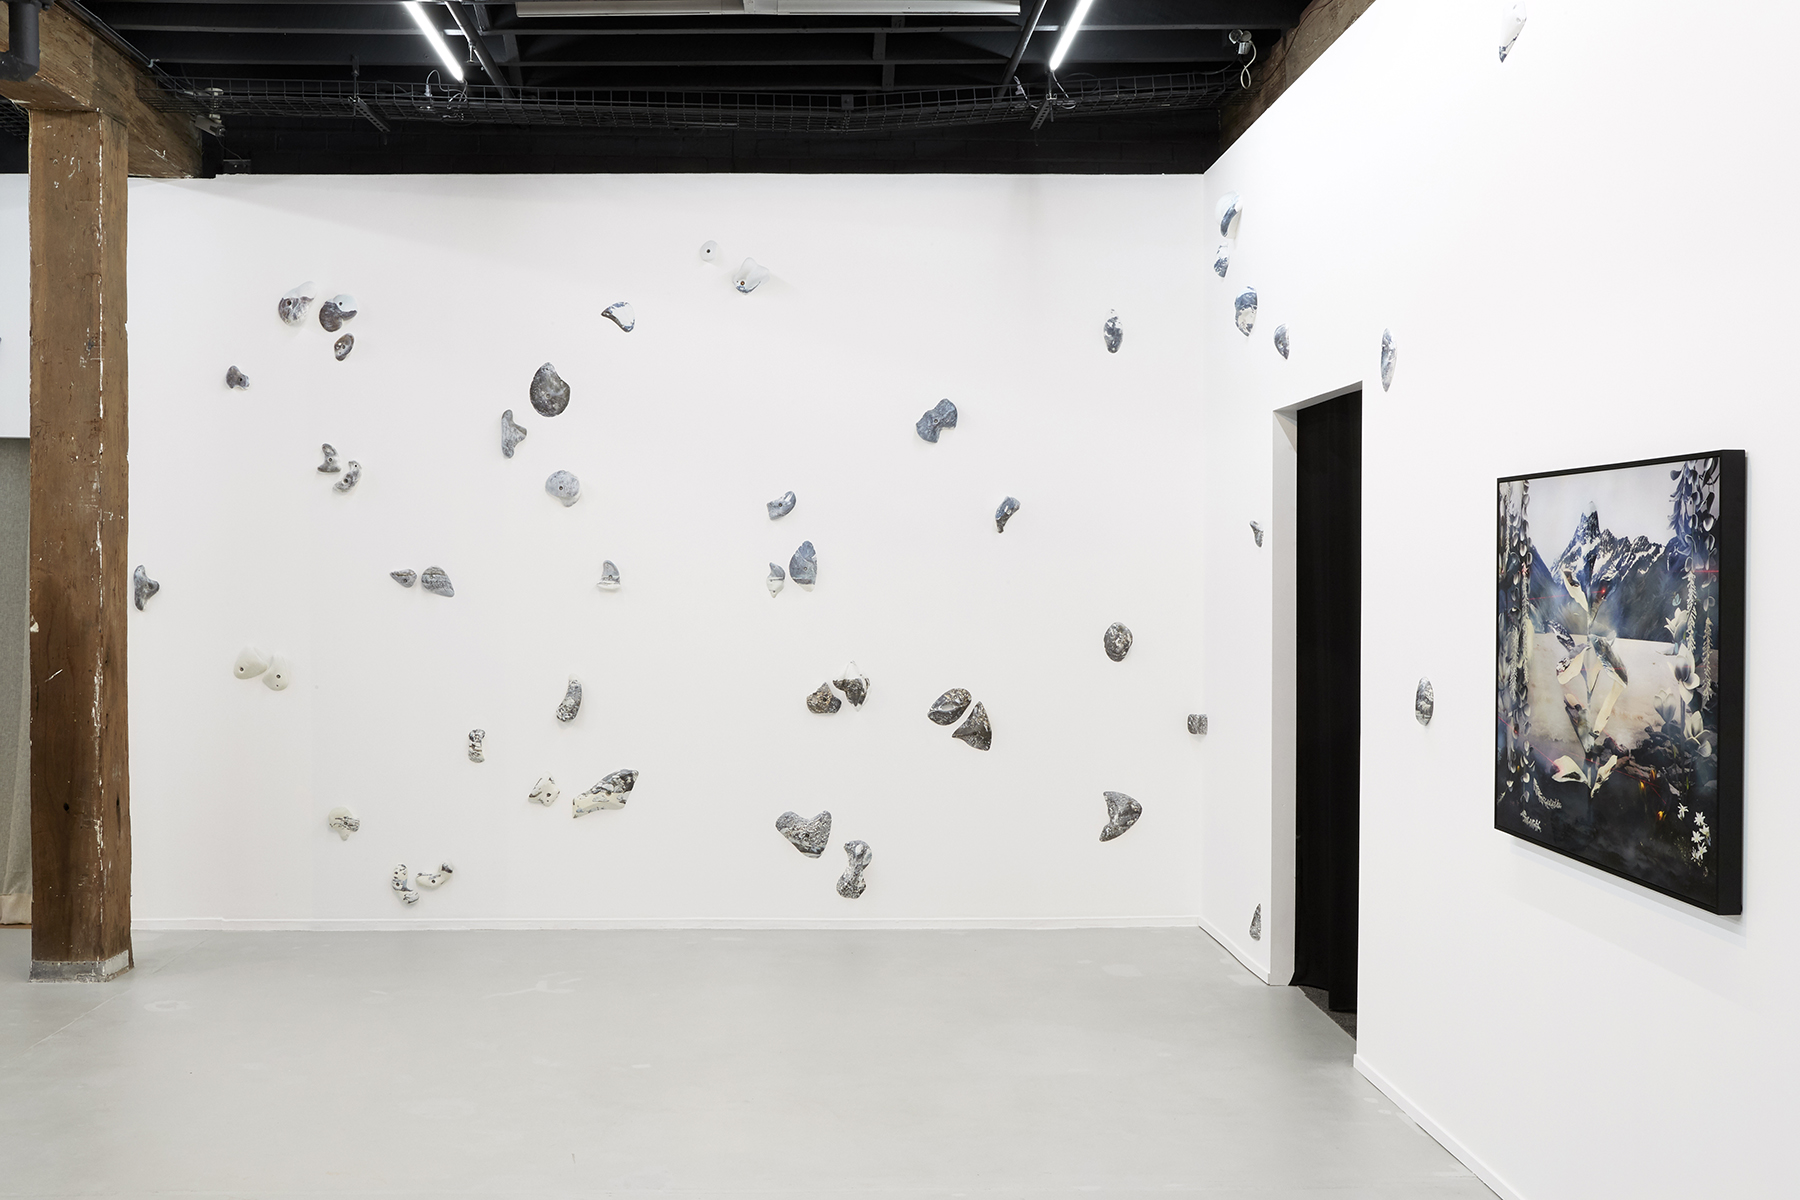 Left to right: Kai Wasikowski, 'Climb, grip, hold,' 2018, hydrographic print on rock climbing holds, dimensions variable. 'Realtree #4,' 2018, inkjet print, 90 x 115 cm. Installation view  2018 NSW Visual Arts Emerging Fellowship , Artspace, Sydney. Image credit: Zan Wimberley.